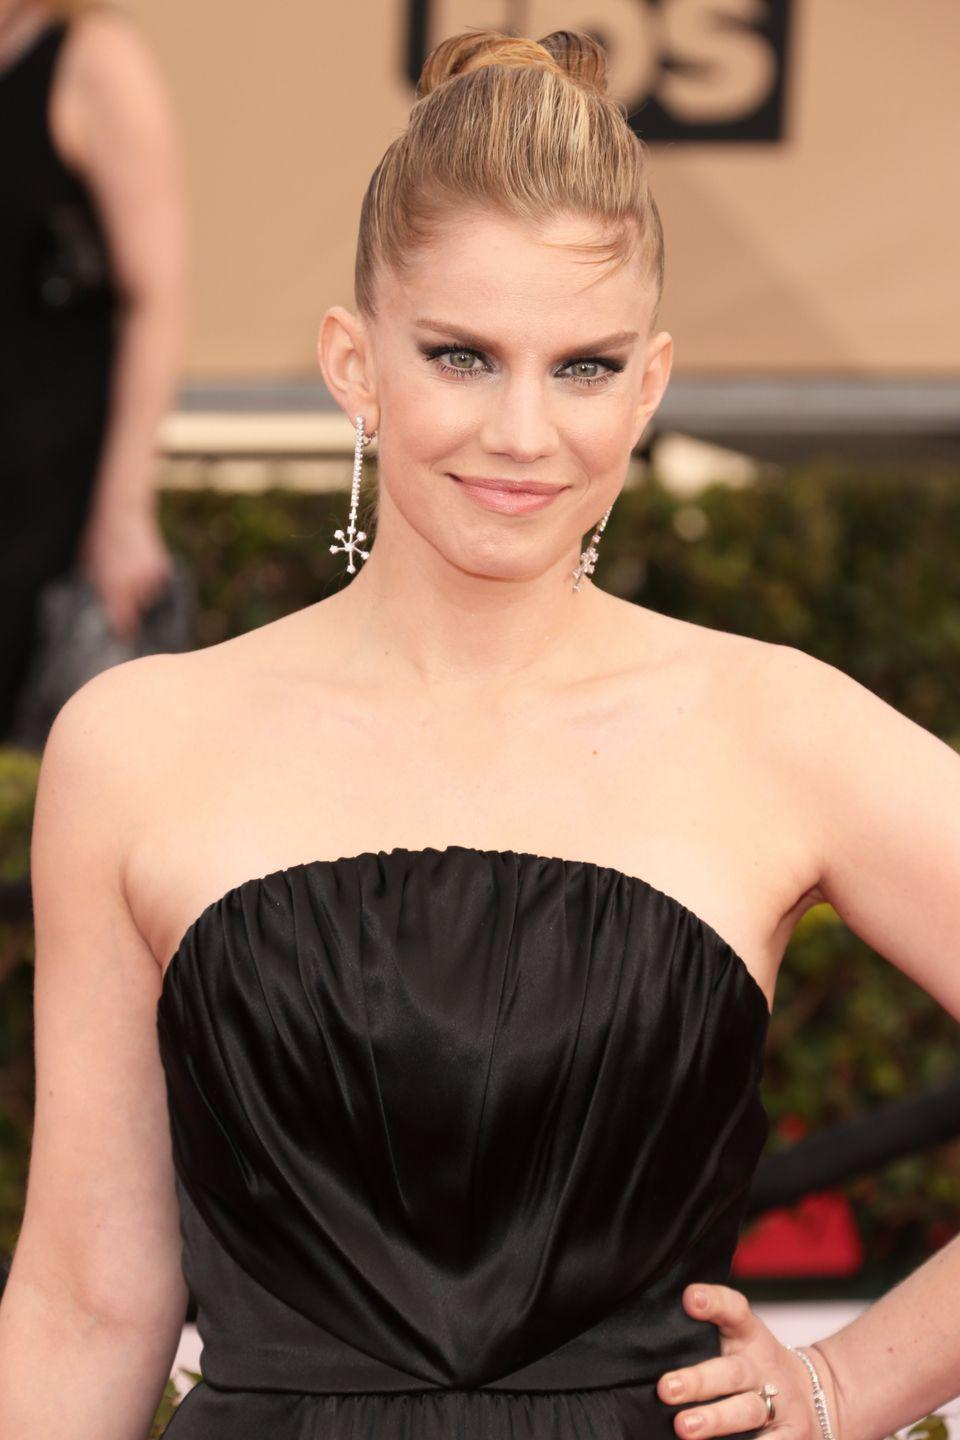 <p>While she took a six-year hiatus from acting between 1999 and 2005, her career is better than ever these days. Since 2012, Chlumsky has starred on HBO's hit comedy series <em>Veep</em> as Amy Brookheimer, chief of staff to Vice President Selina Meyer, a role for which she's earned six Emmy nominations.</p>